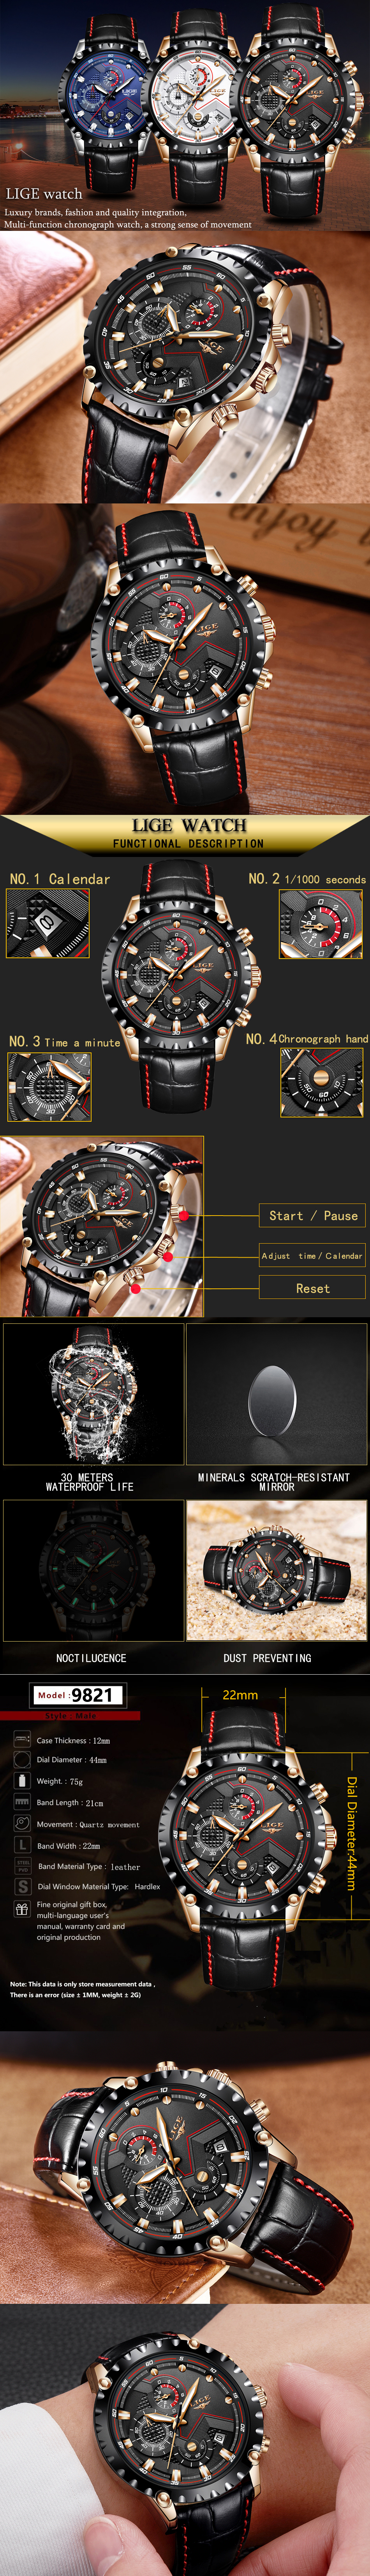 rubber en publications watch pagina journal lige b bands prima straps watches vip style